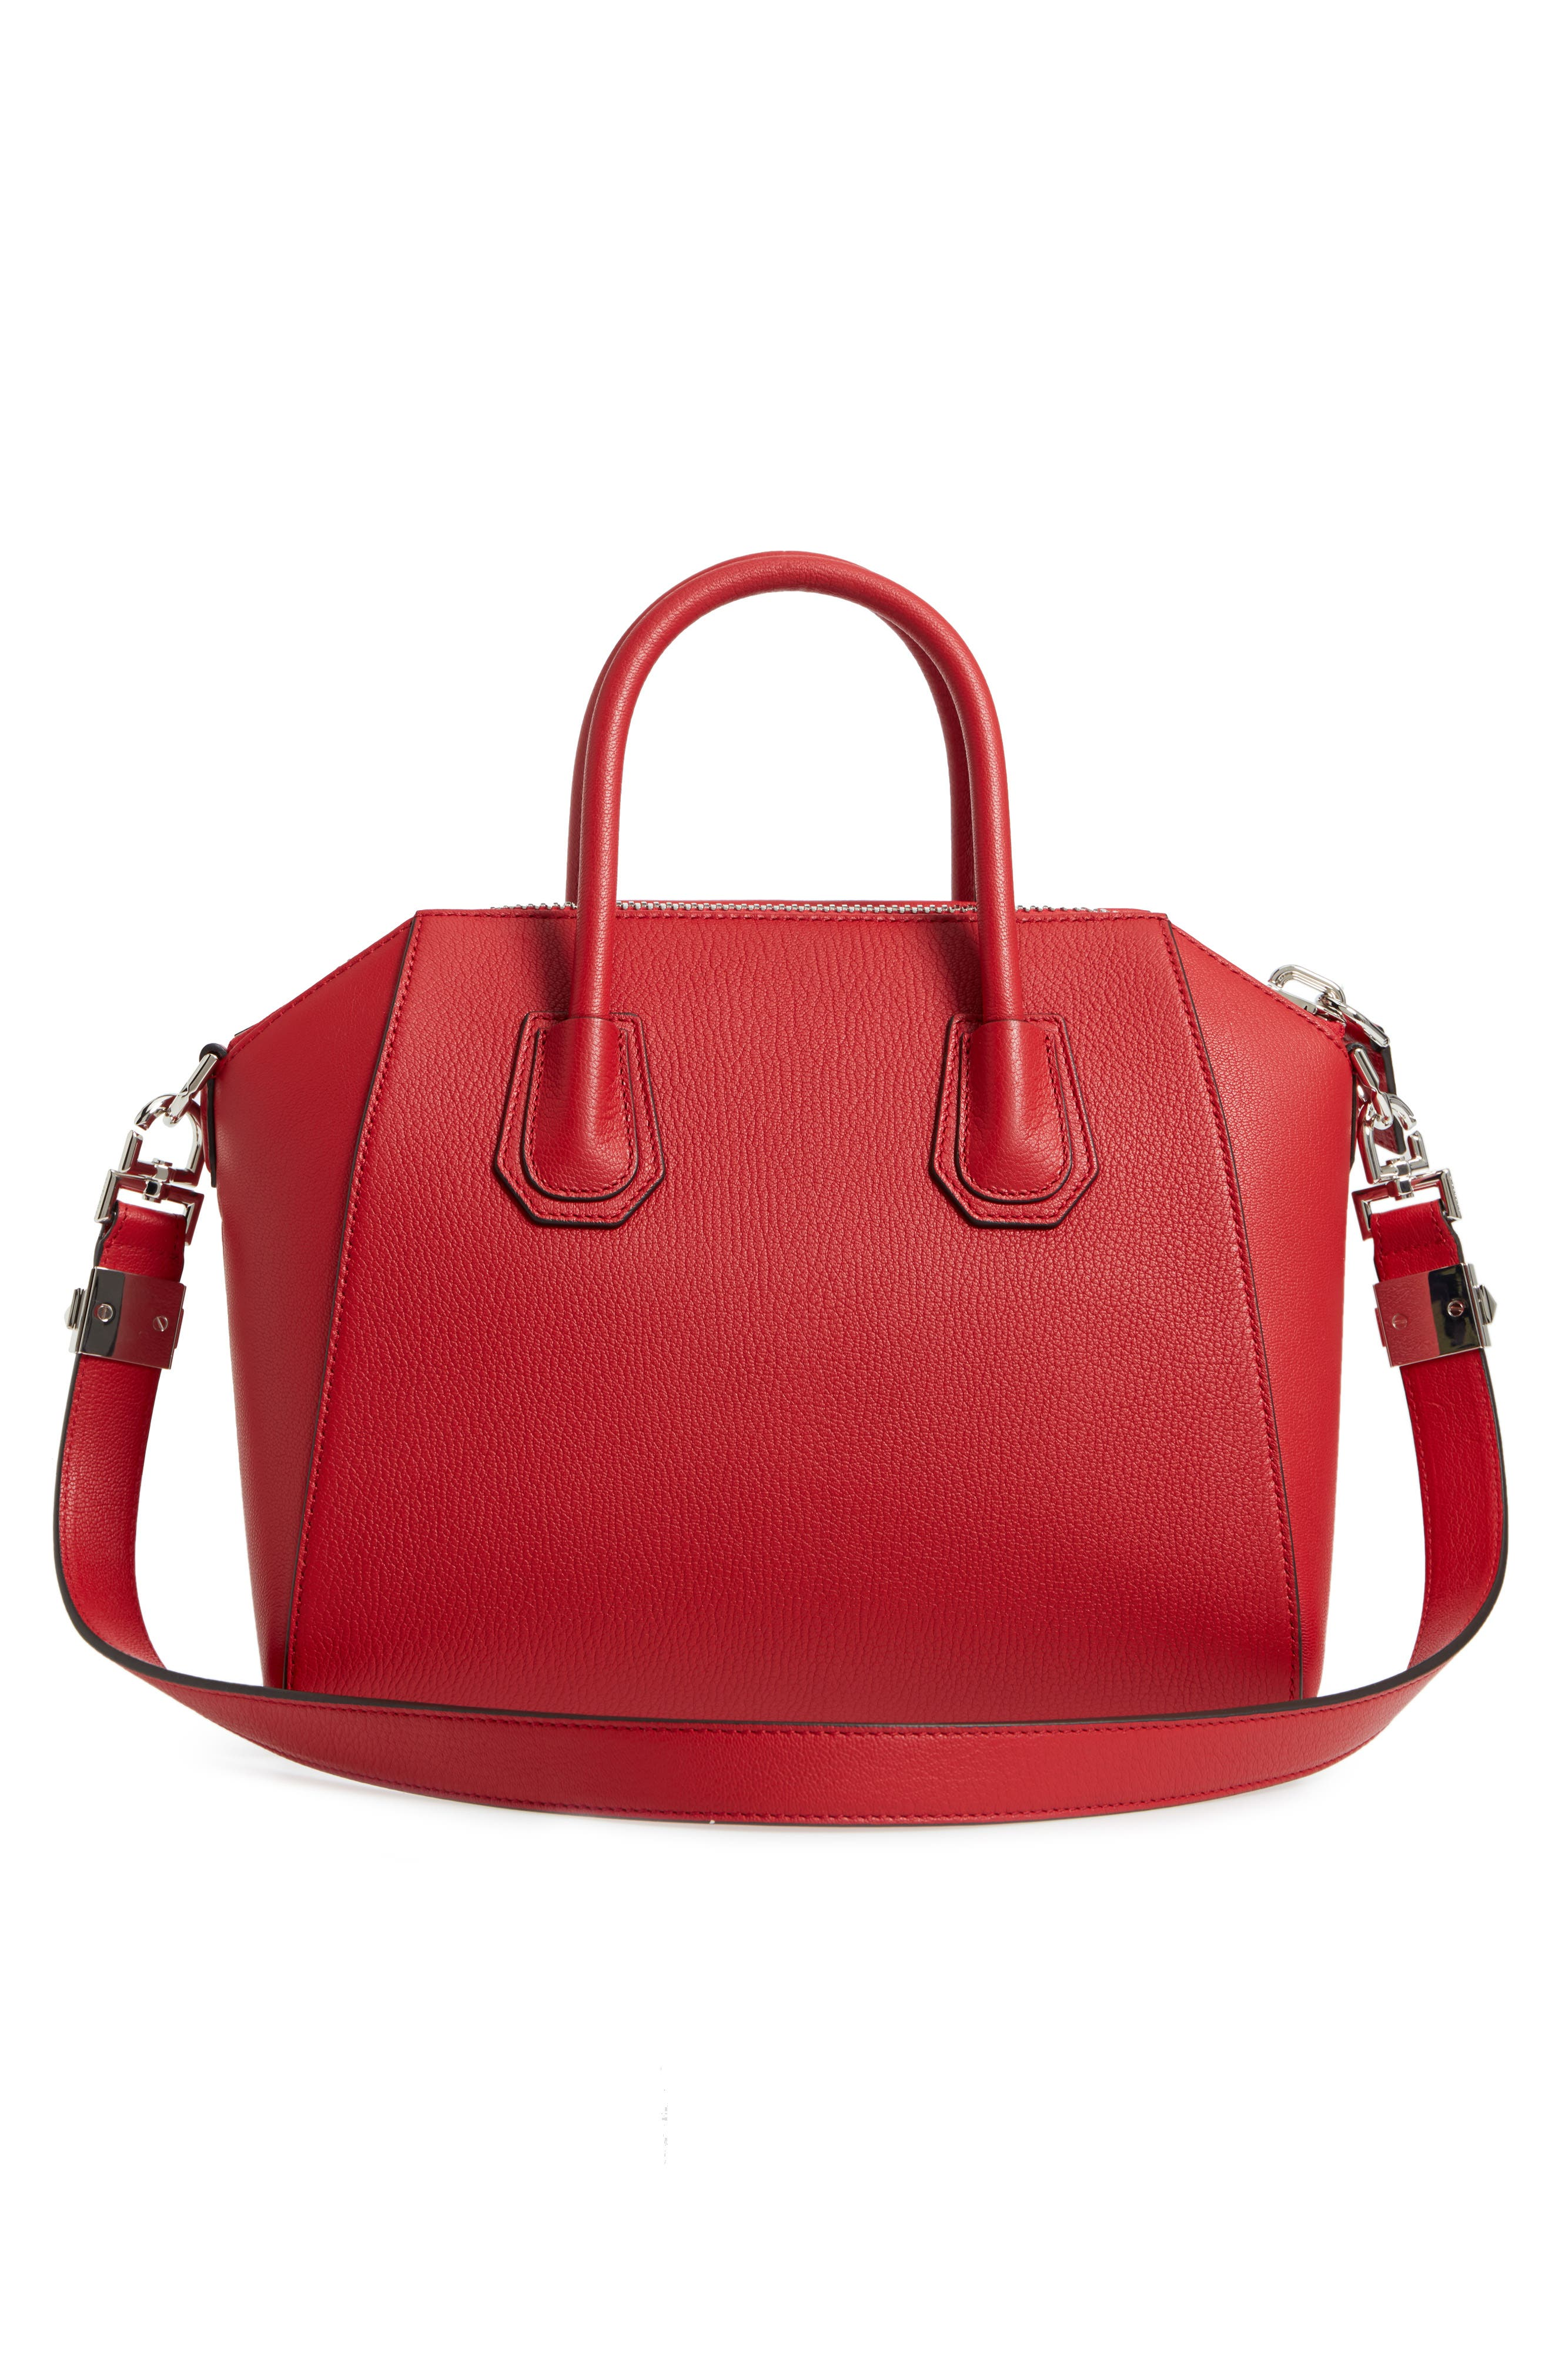 'Small Antigona' Leather Satchel,                             Alternate thumbnail 3, color,                             Bright Red